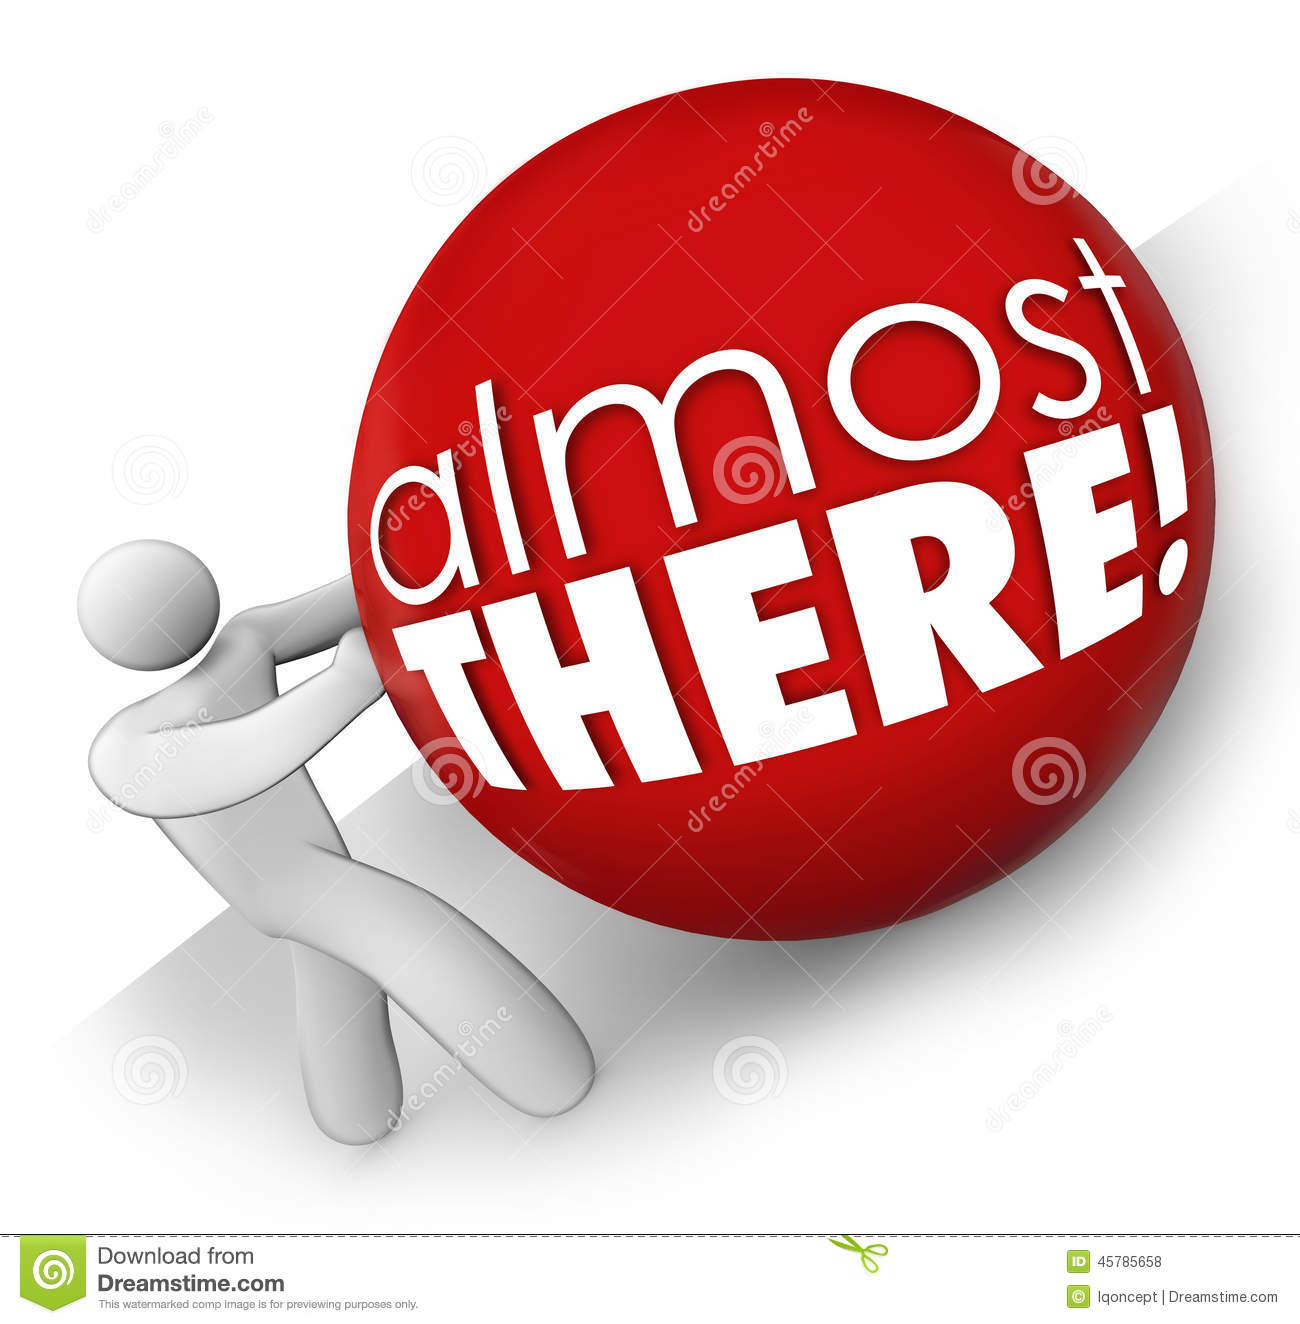 Almost There Words On A 3d Ball Rolled By A Person Man Or Worker On A